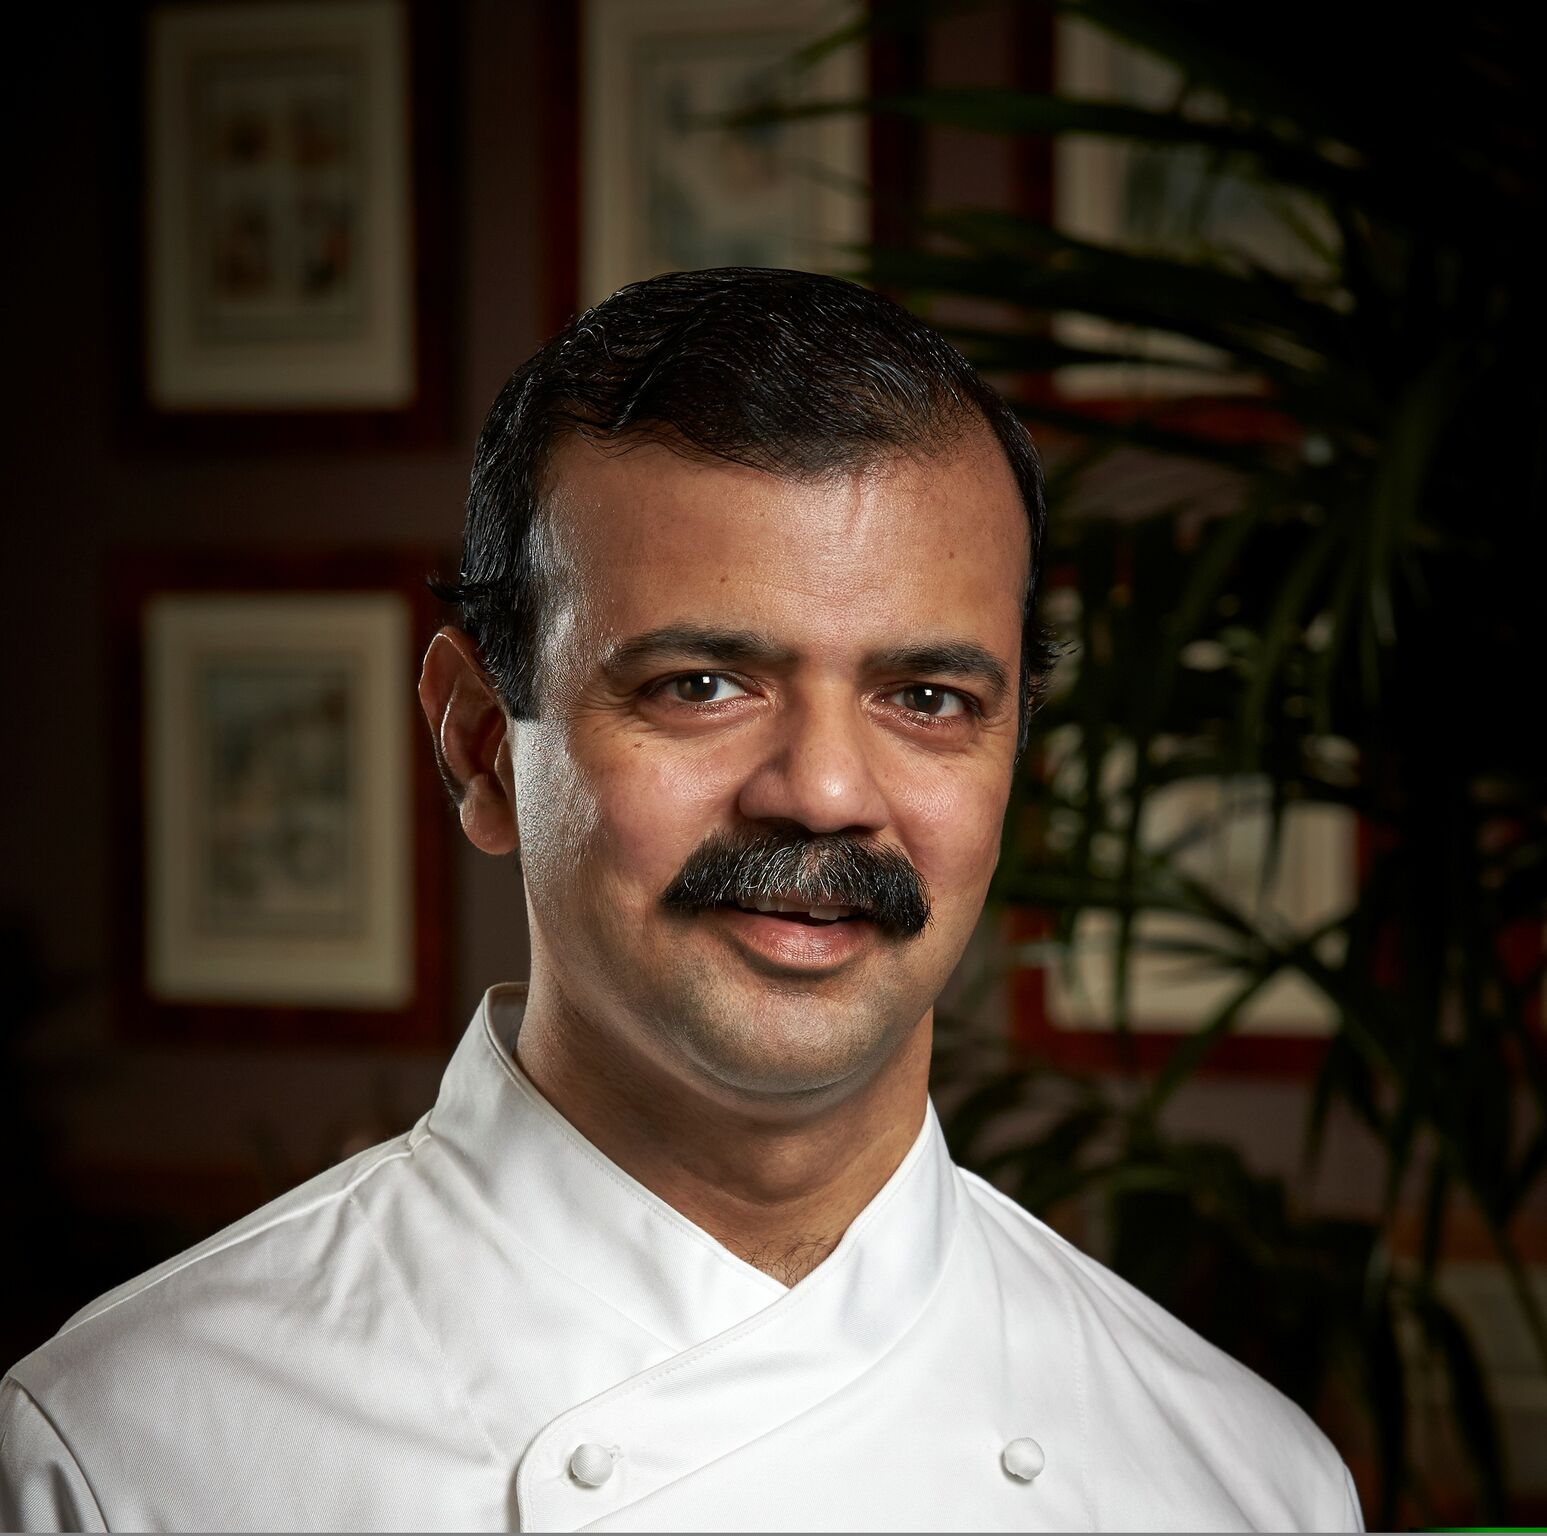 Executive Chef Nilesh Singhvi